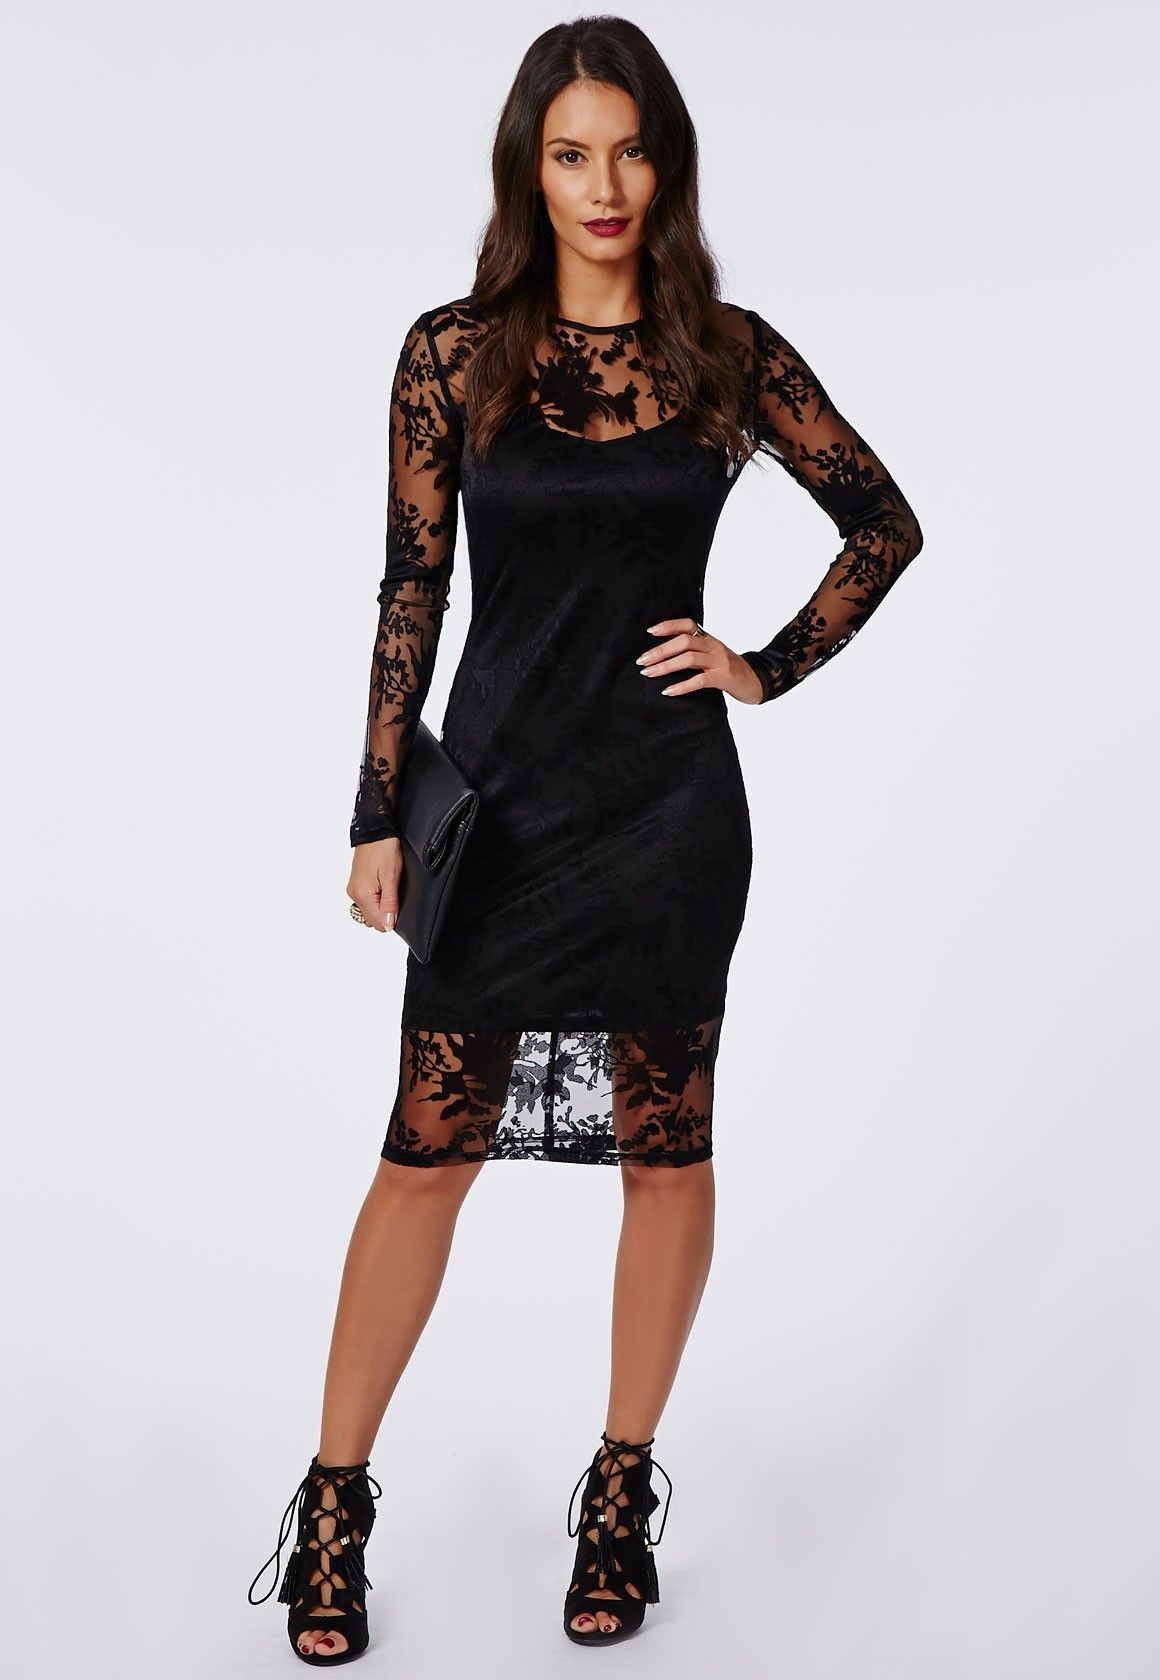 Black Lace Long Sleeve Dress Photo Album - Klarosa